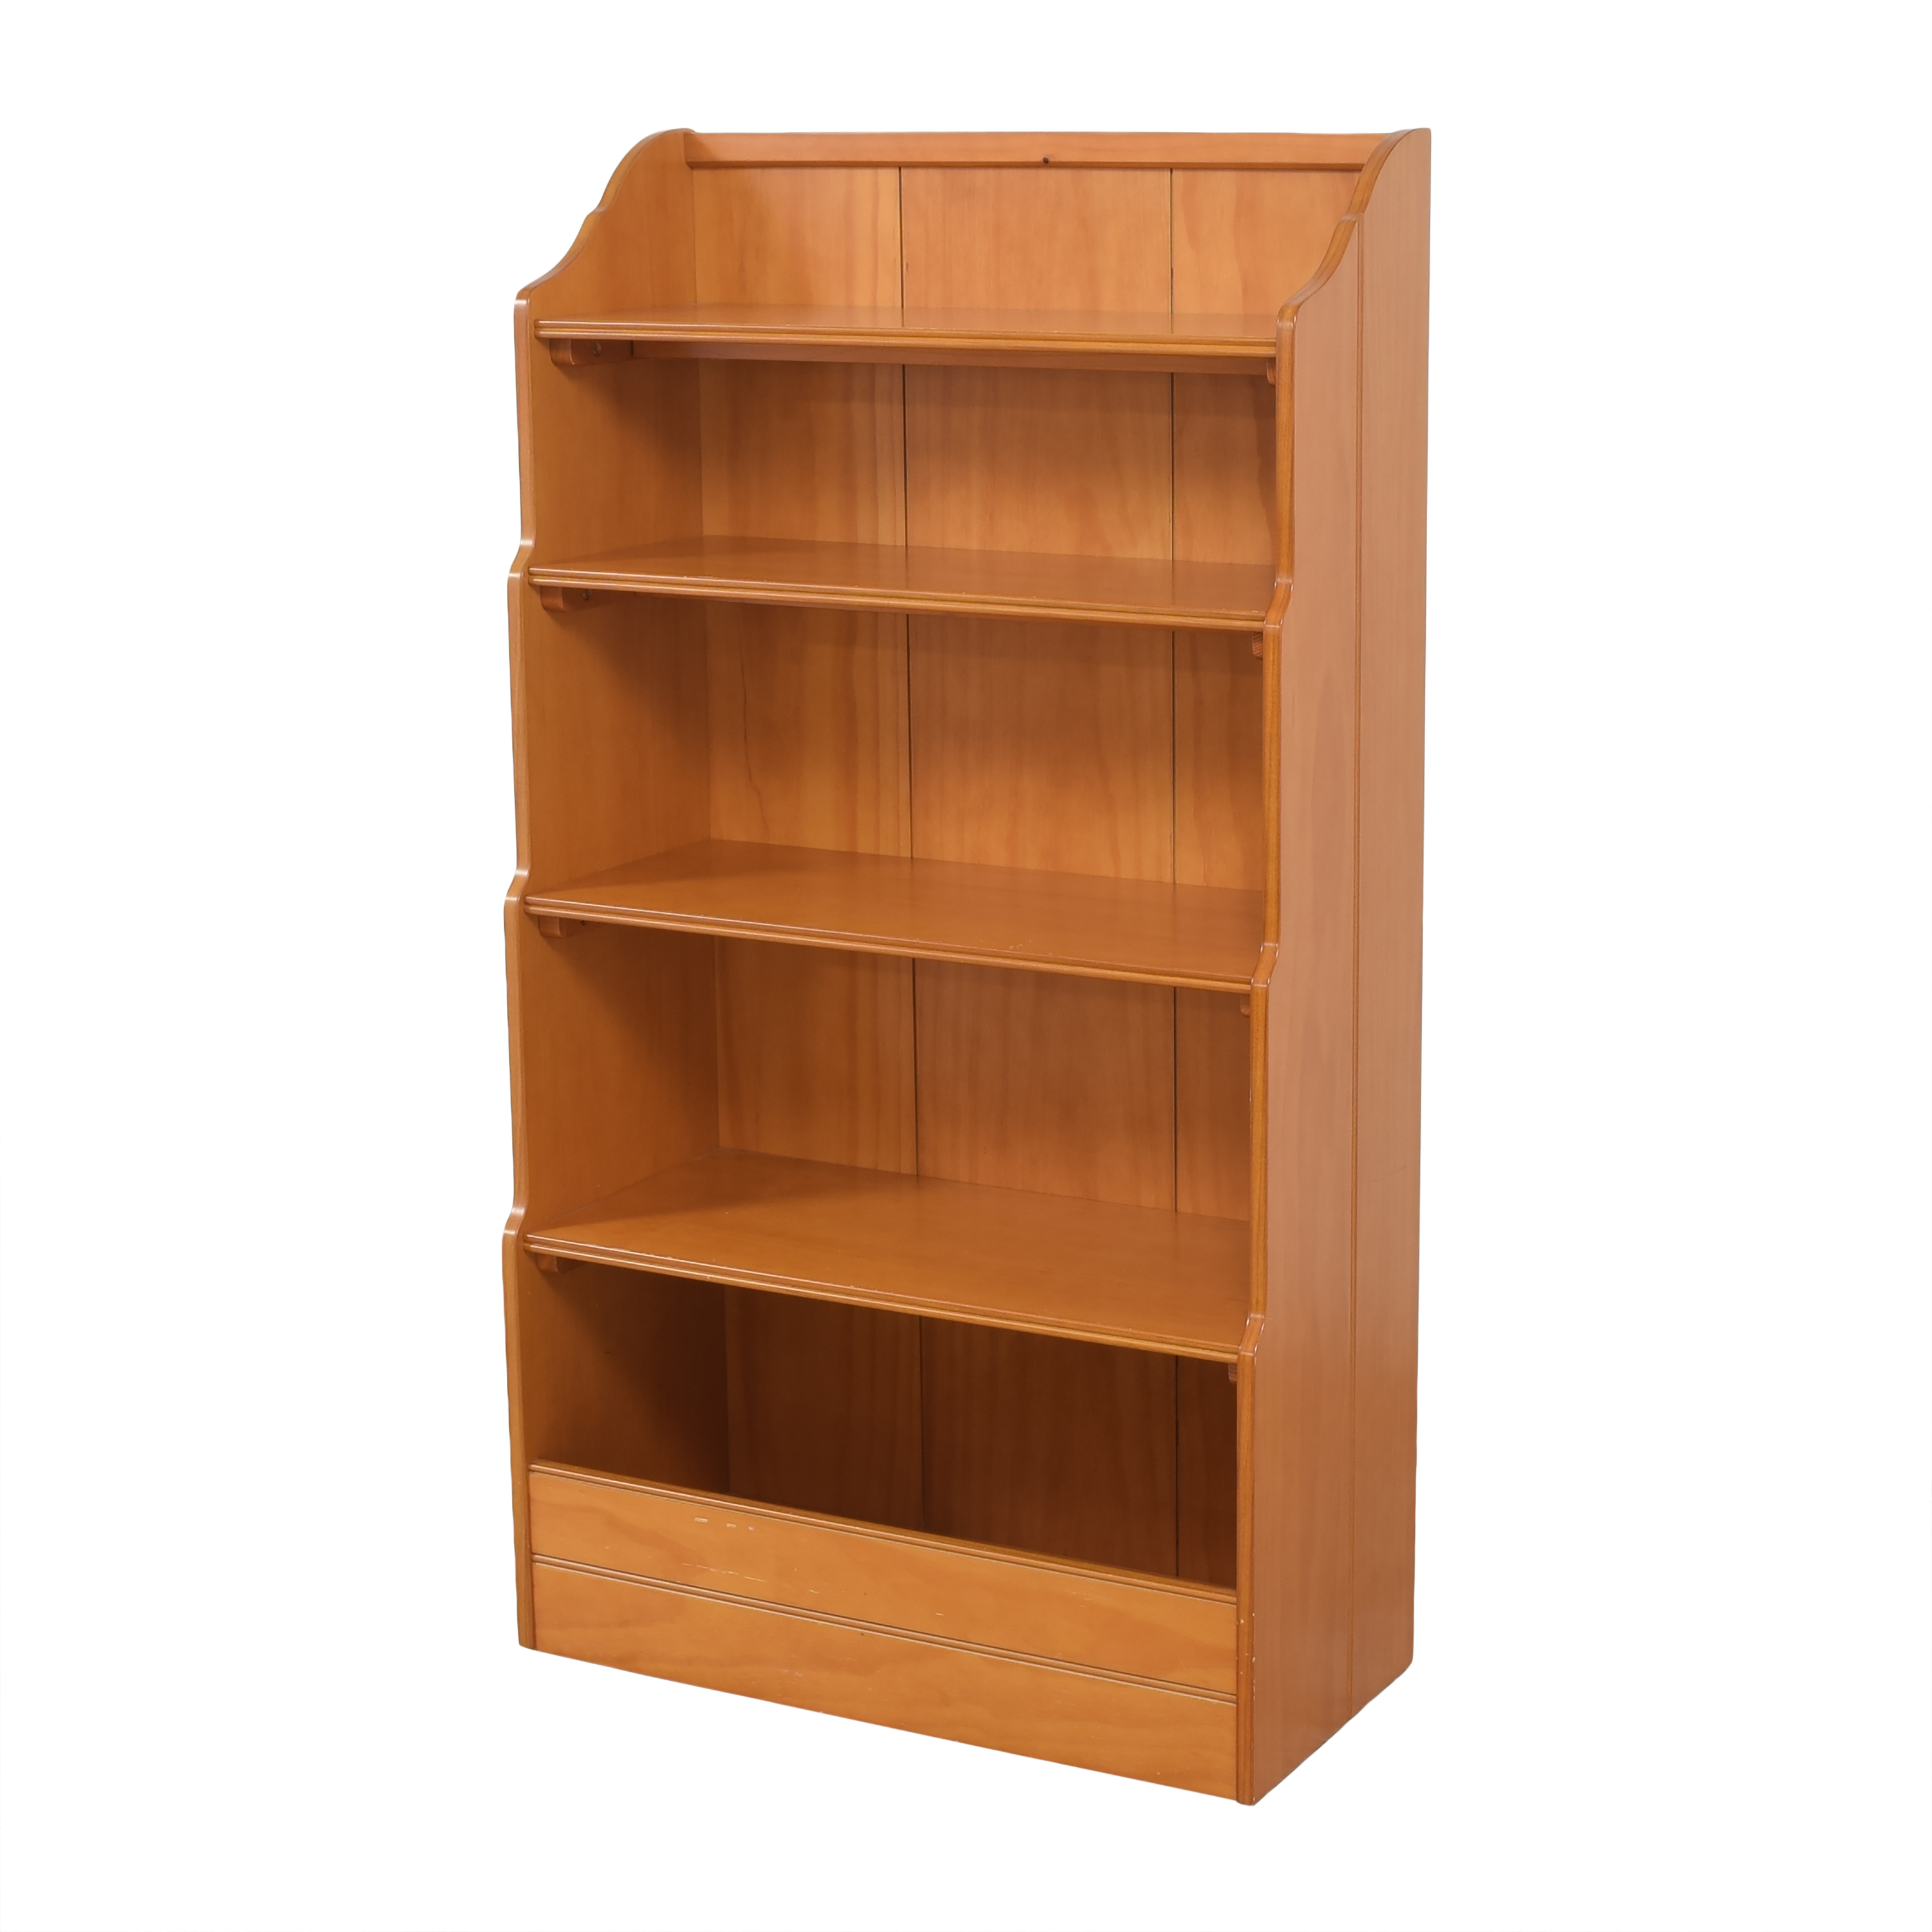 Land of Nod Land of Nod Open Top Bookcase on sale